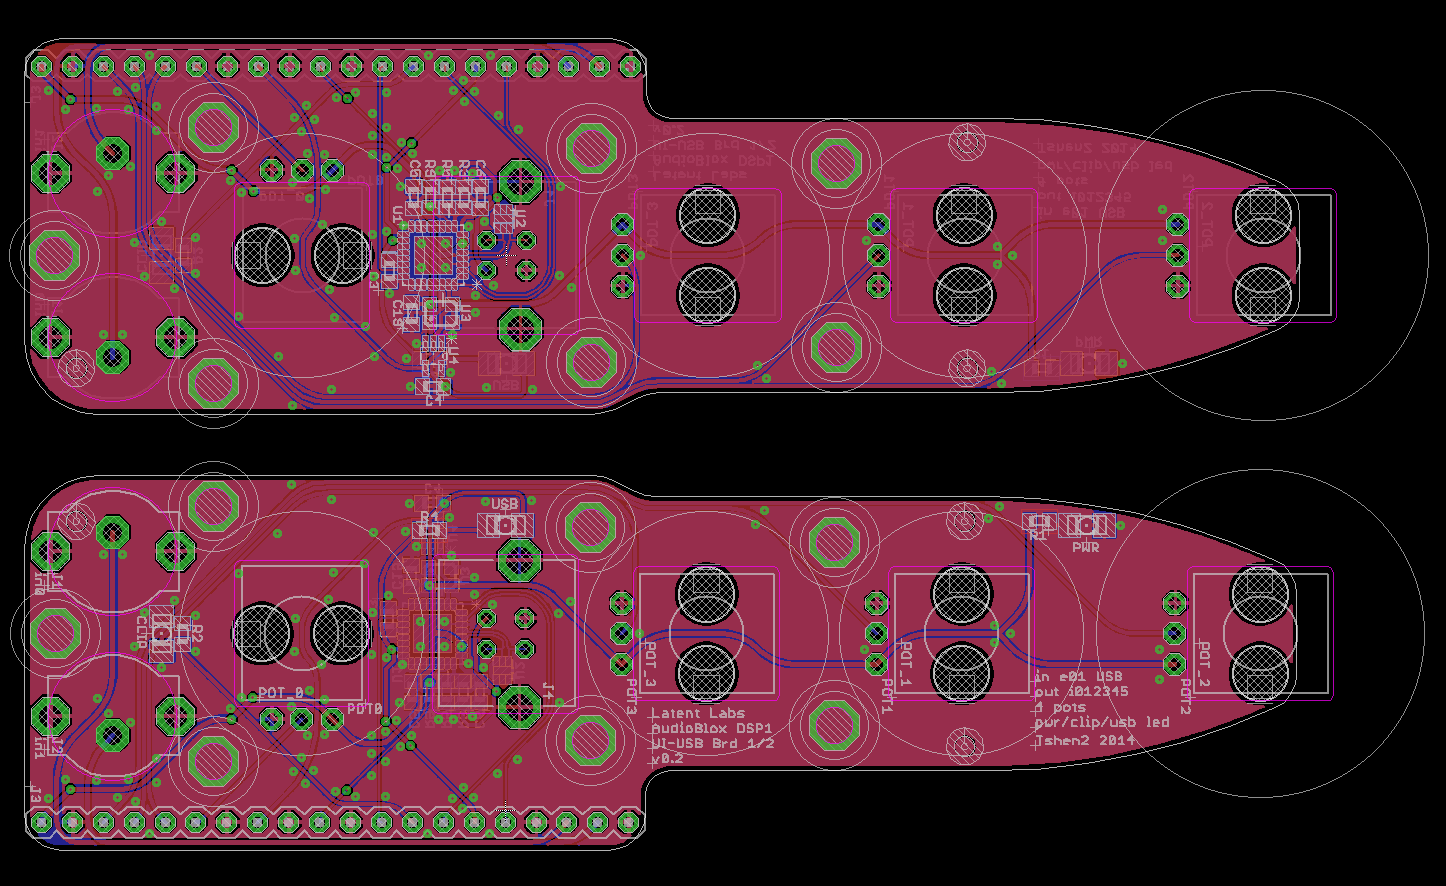 PCB layout - front (lower) & back (upper).